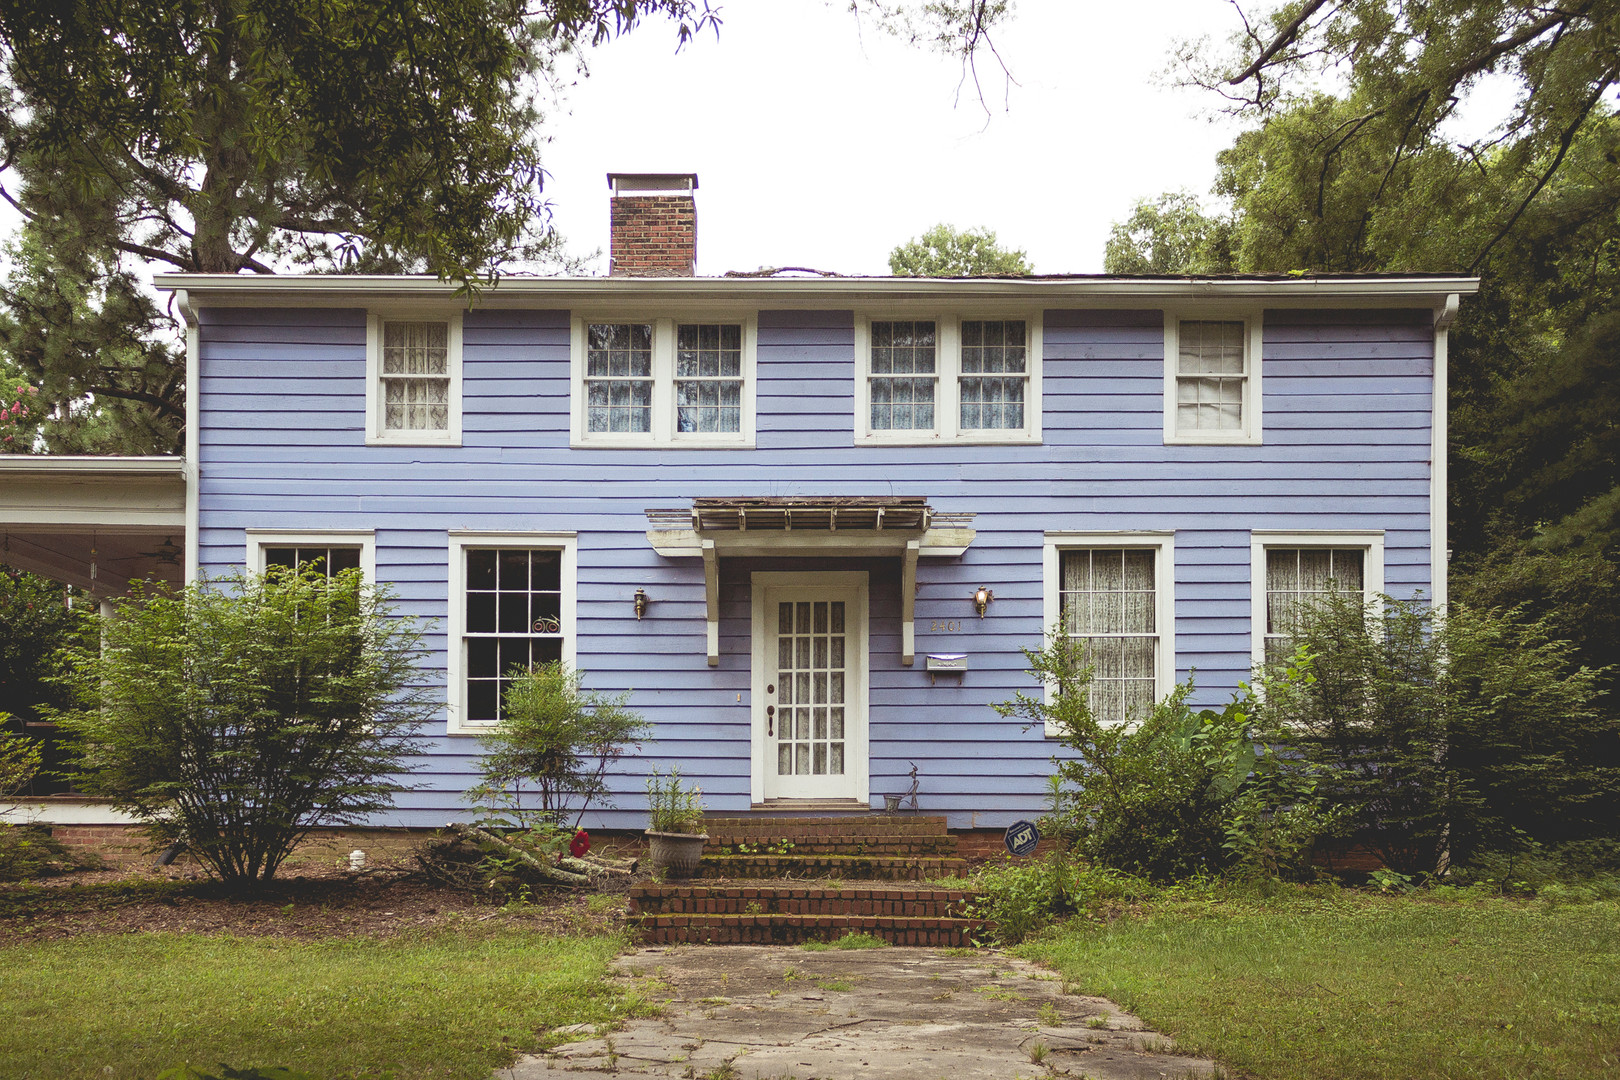 Country house in Durham, North Carolina, July 2013